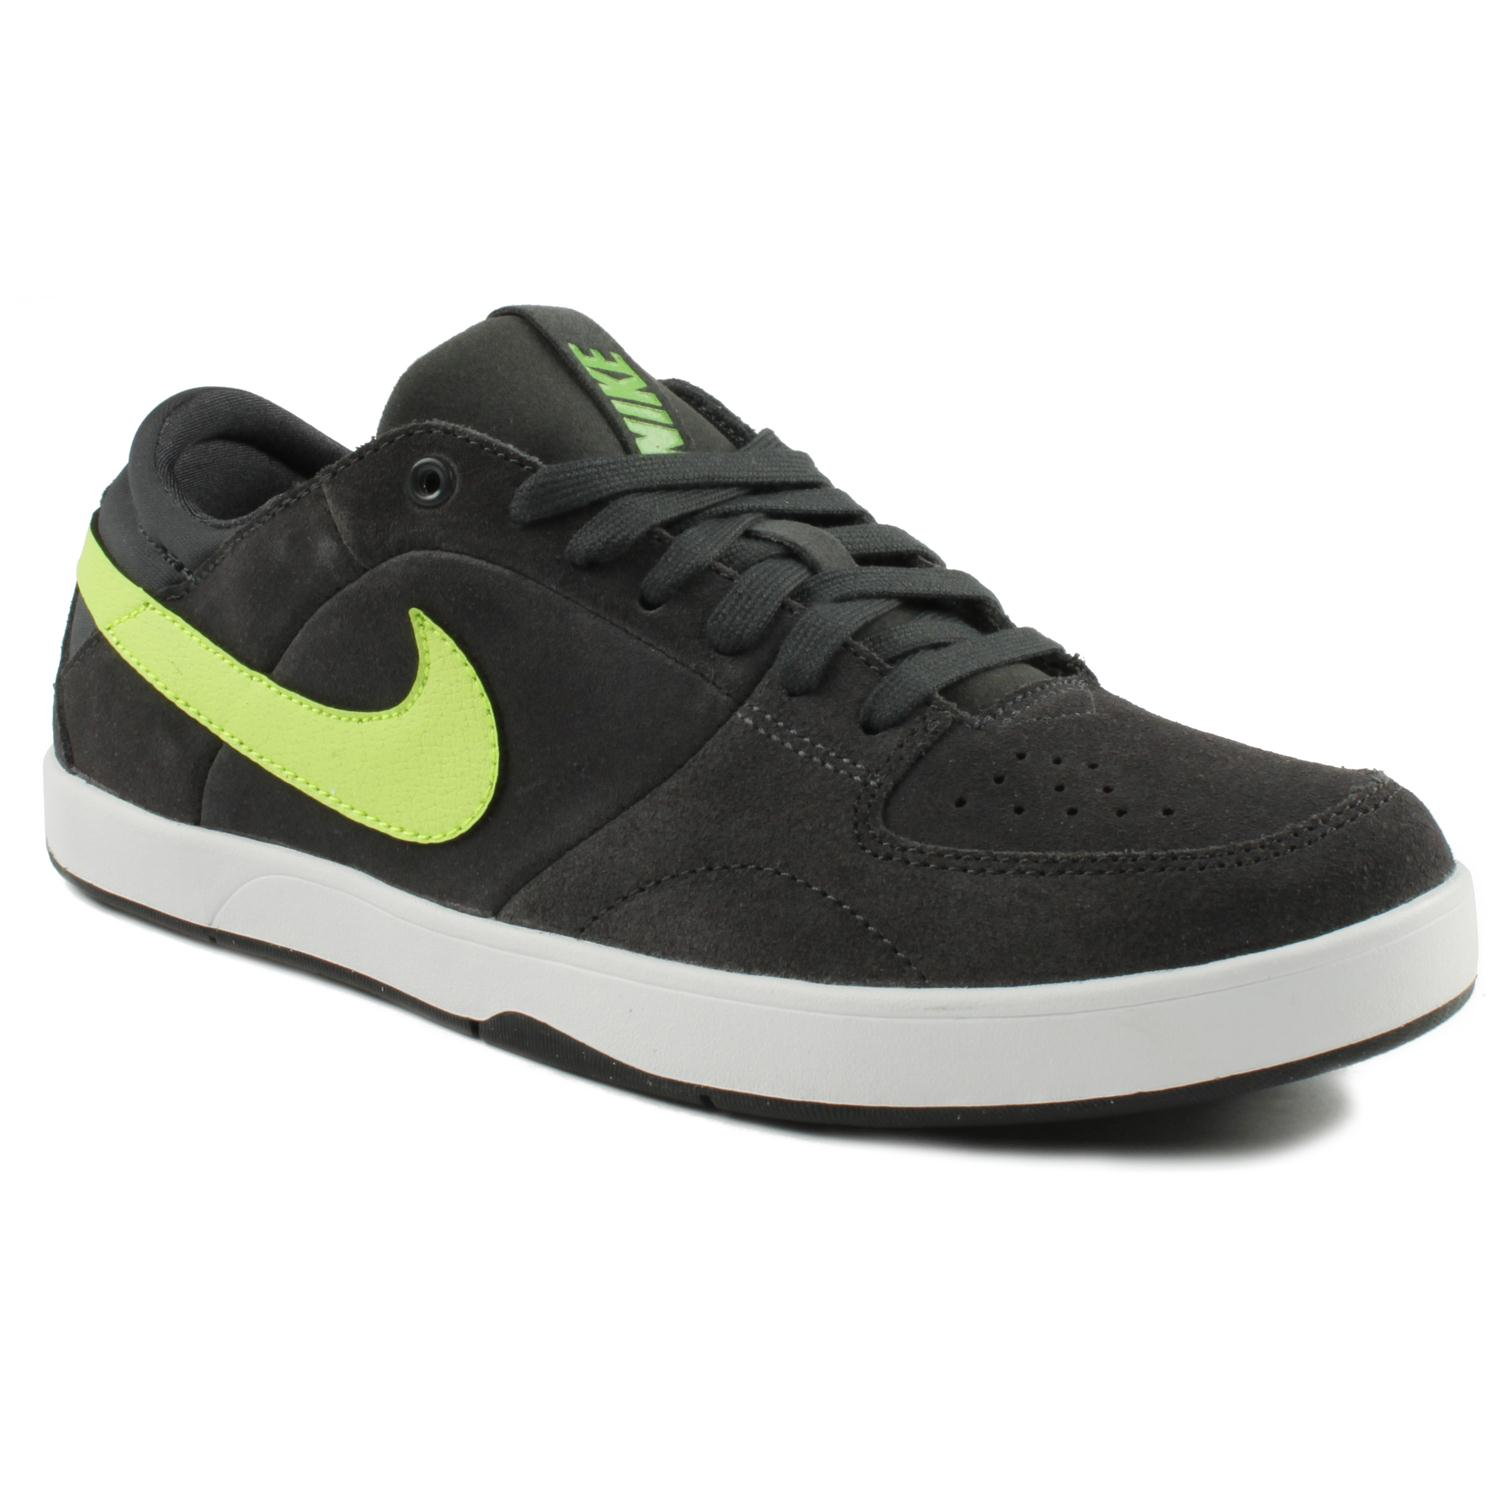 Nike Outlet Store,80% OFF Cheap Nike Shoes For Sale at Nike Store Online,Include Cheap Nike Air Max,Air Force 1,Nike Free Run,Air Jordan,Basketball Shoes,Reasonable Price and Fast Delivery!